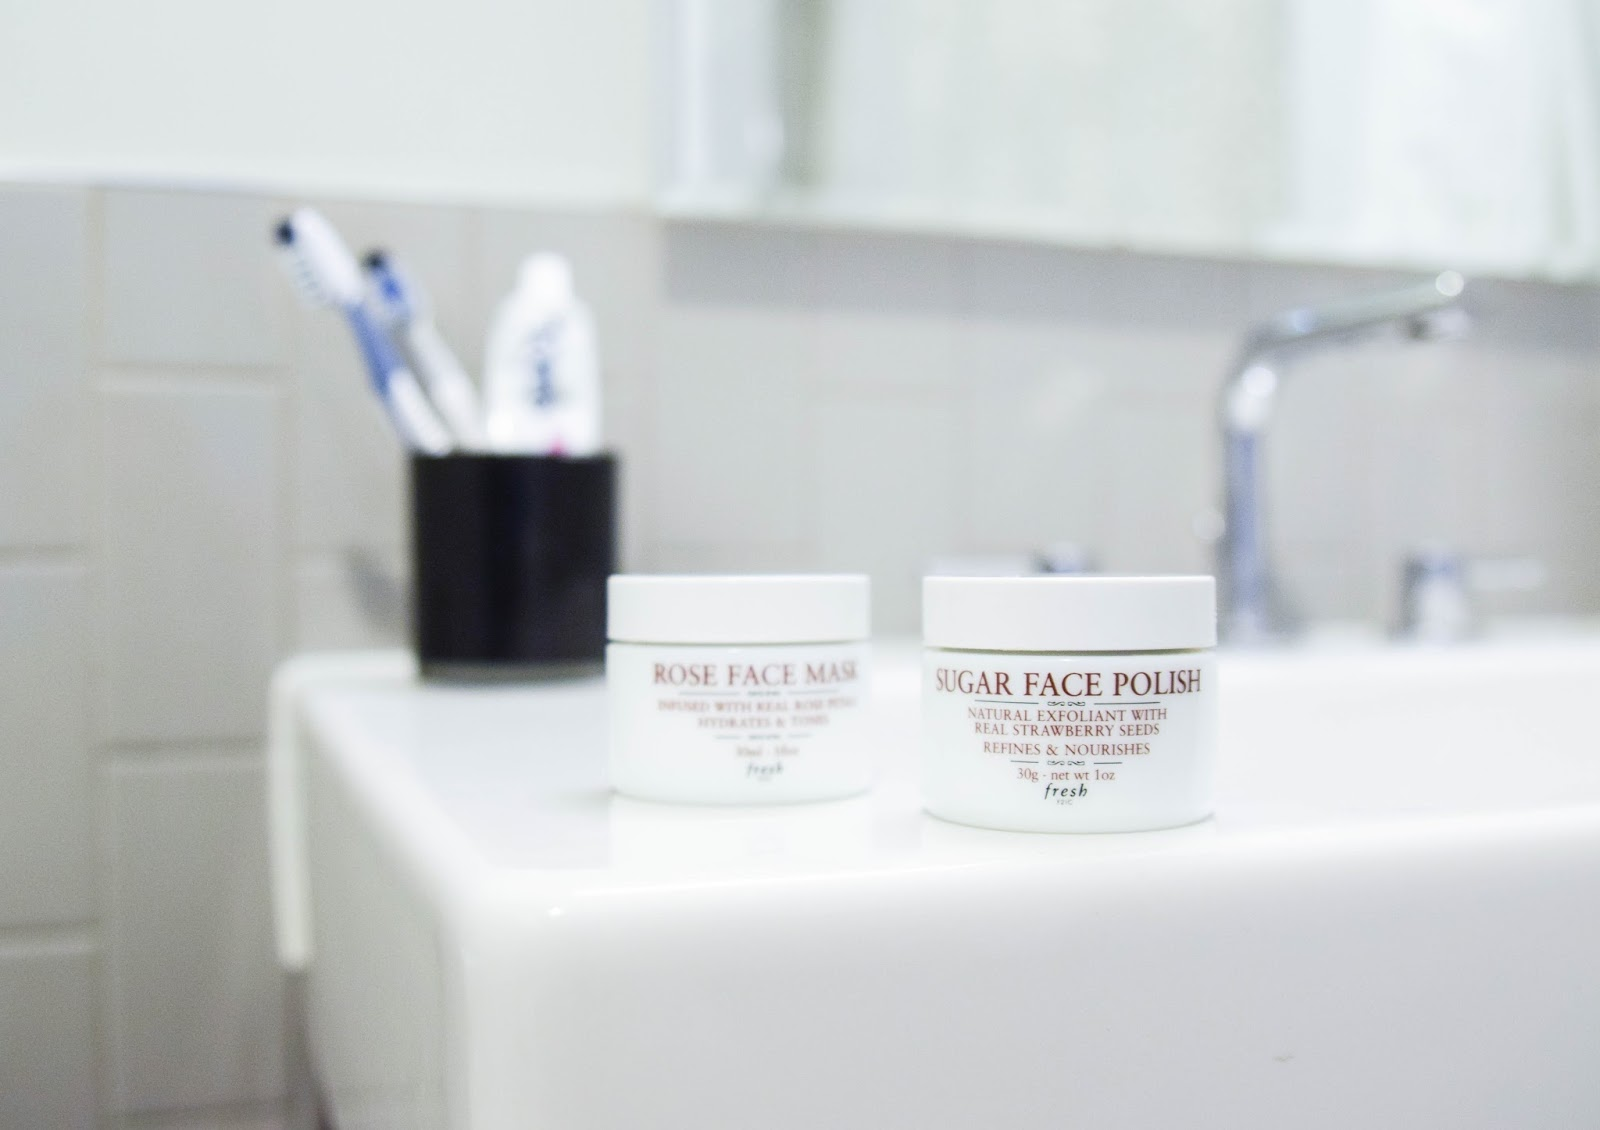 Taking Care of Your Skin: Fresh Skin Care